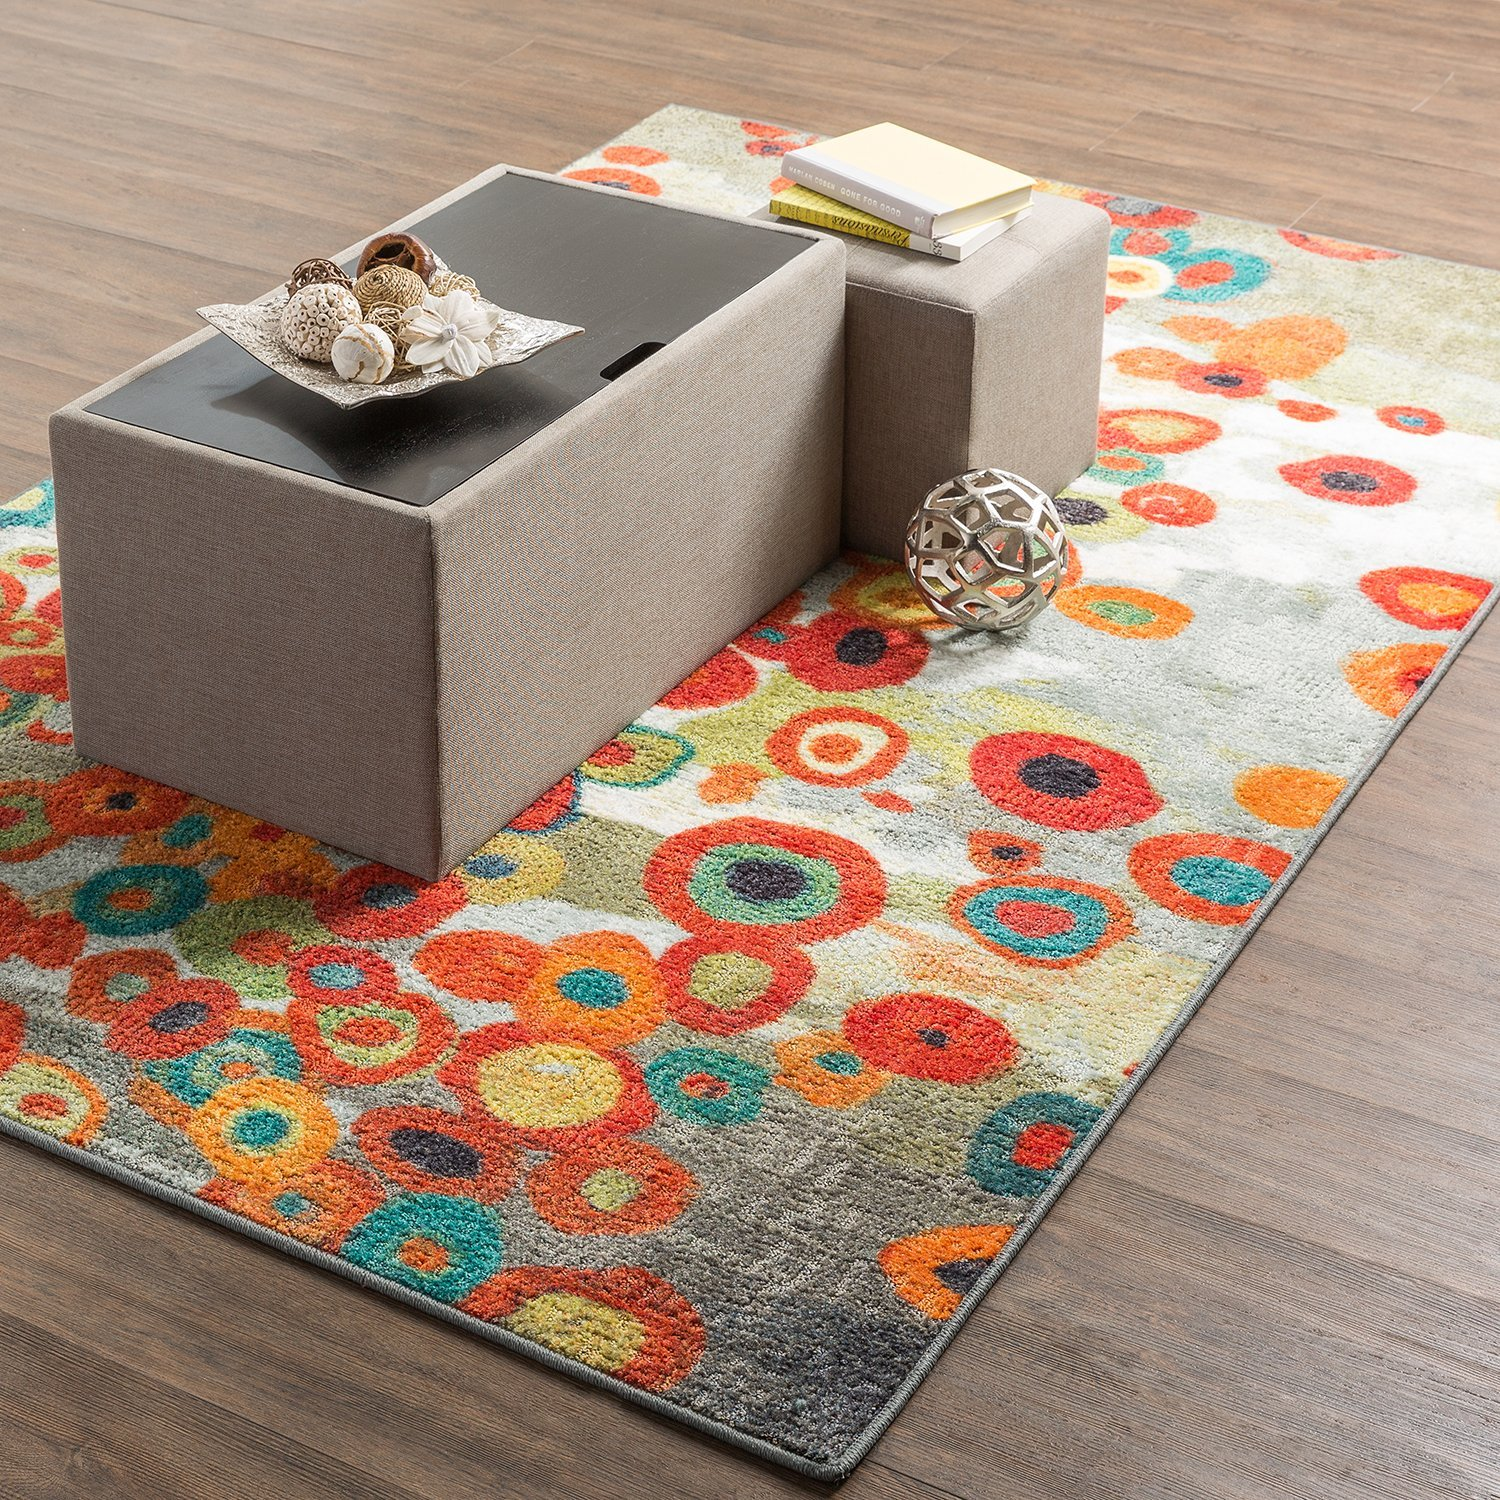 Multicolored Floral Abstract Printed Rug Thewowdecor